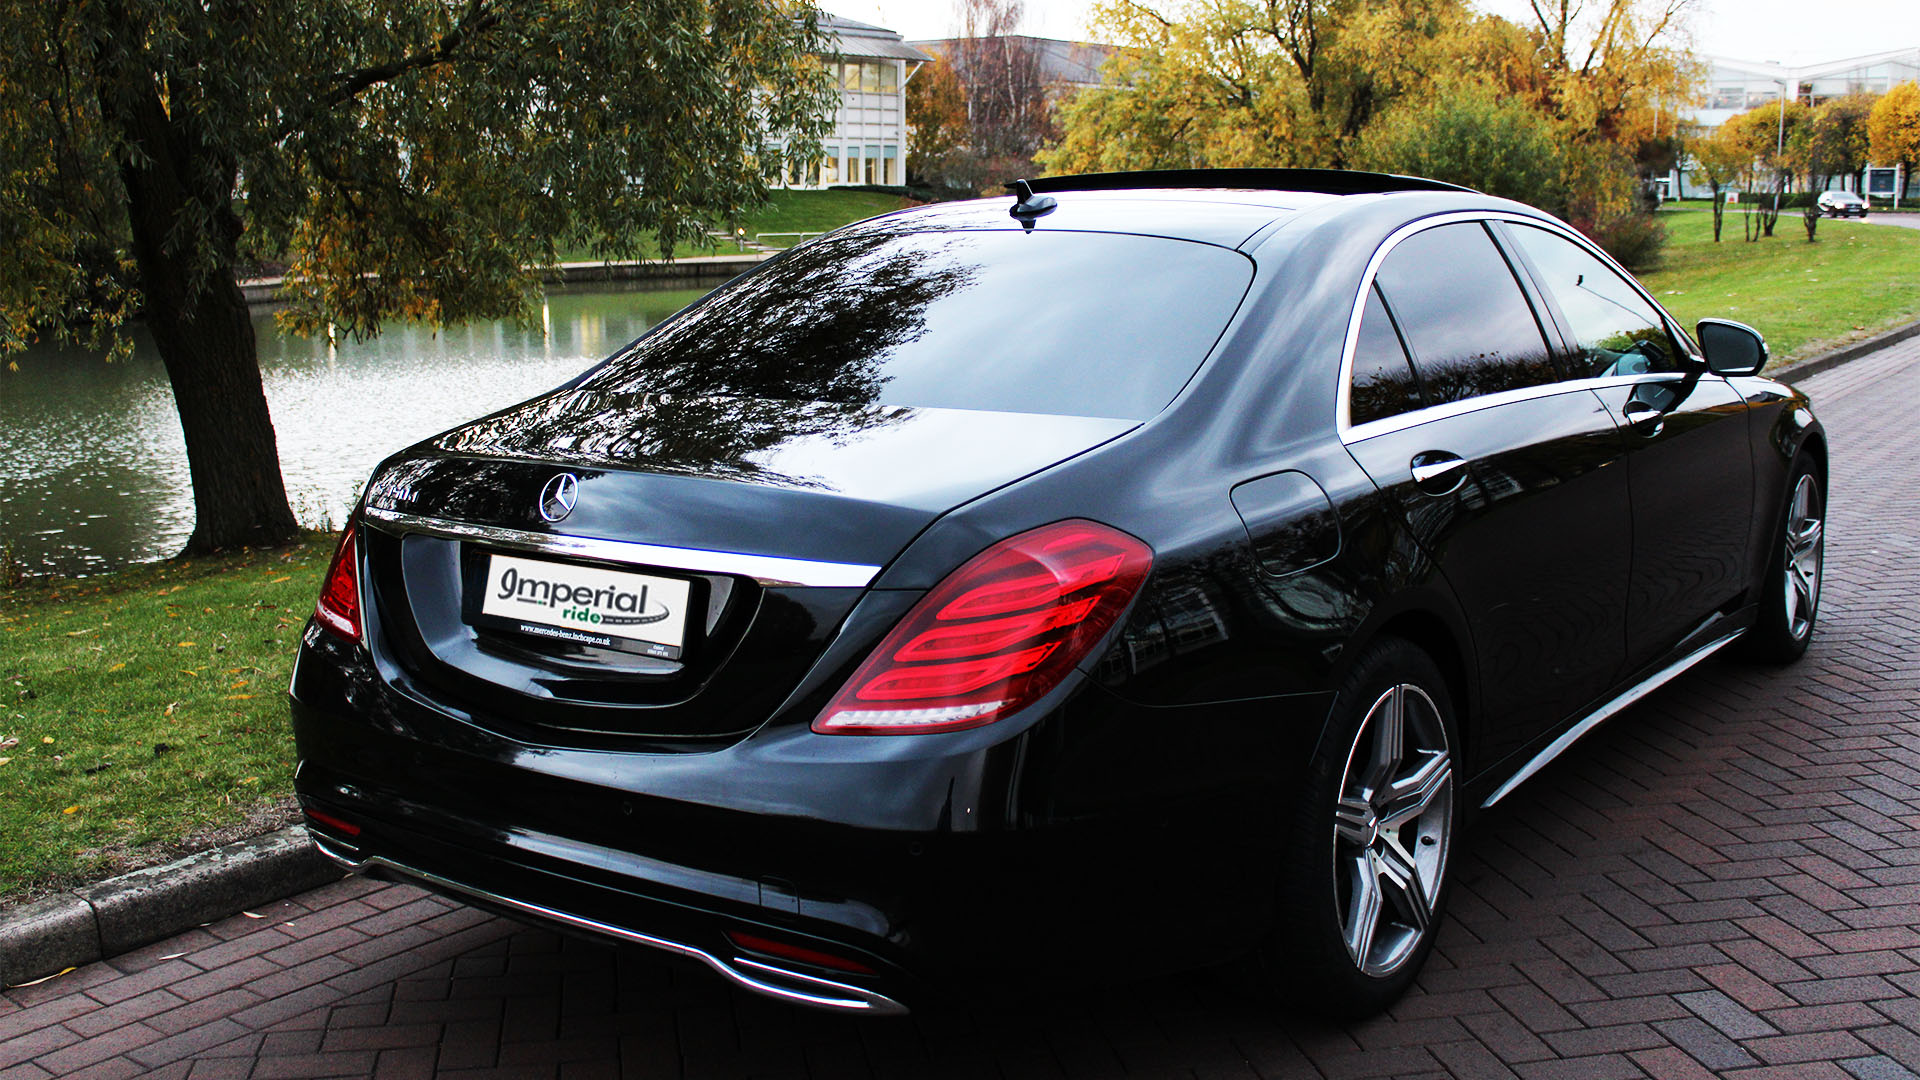 s-class-london-hire